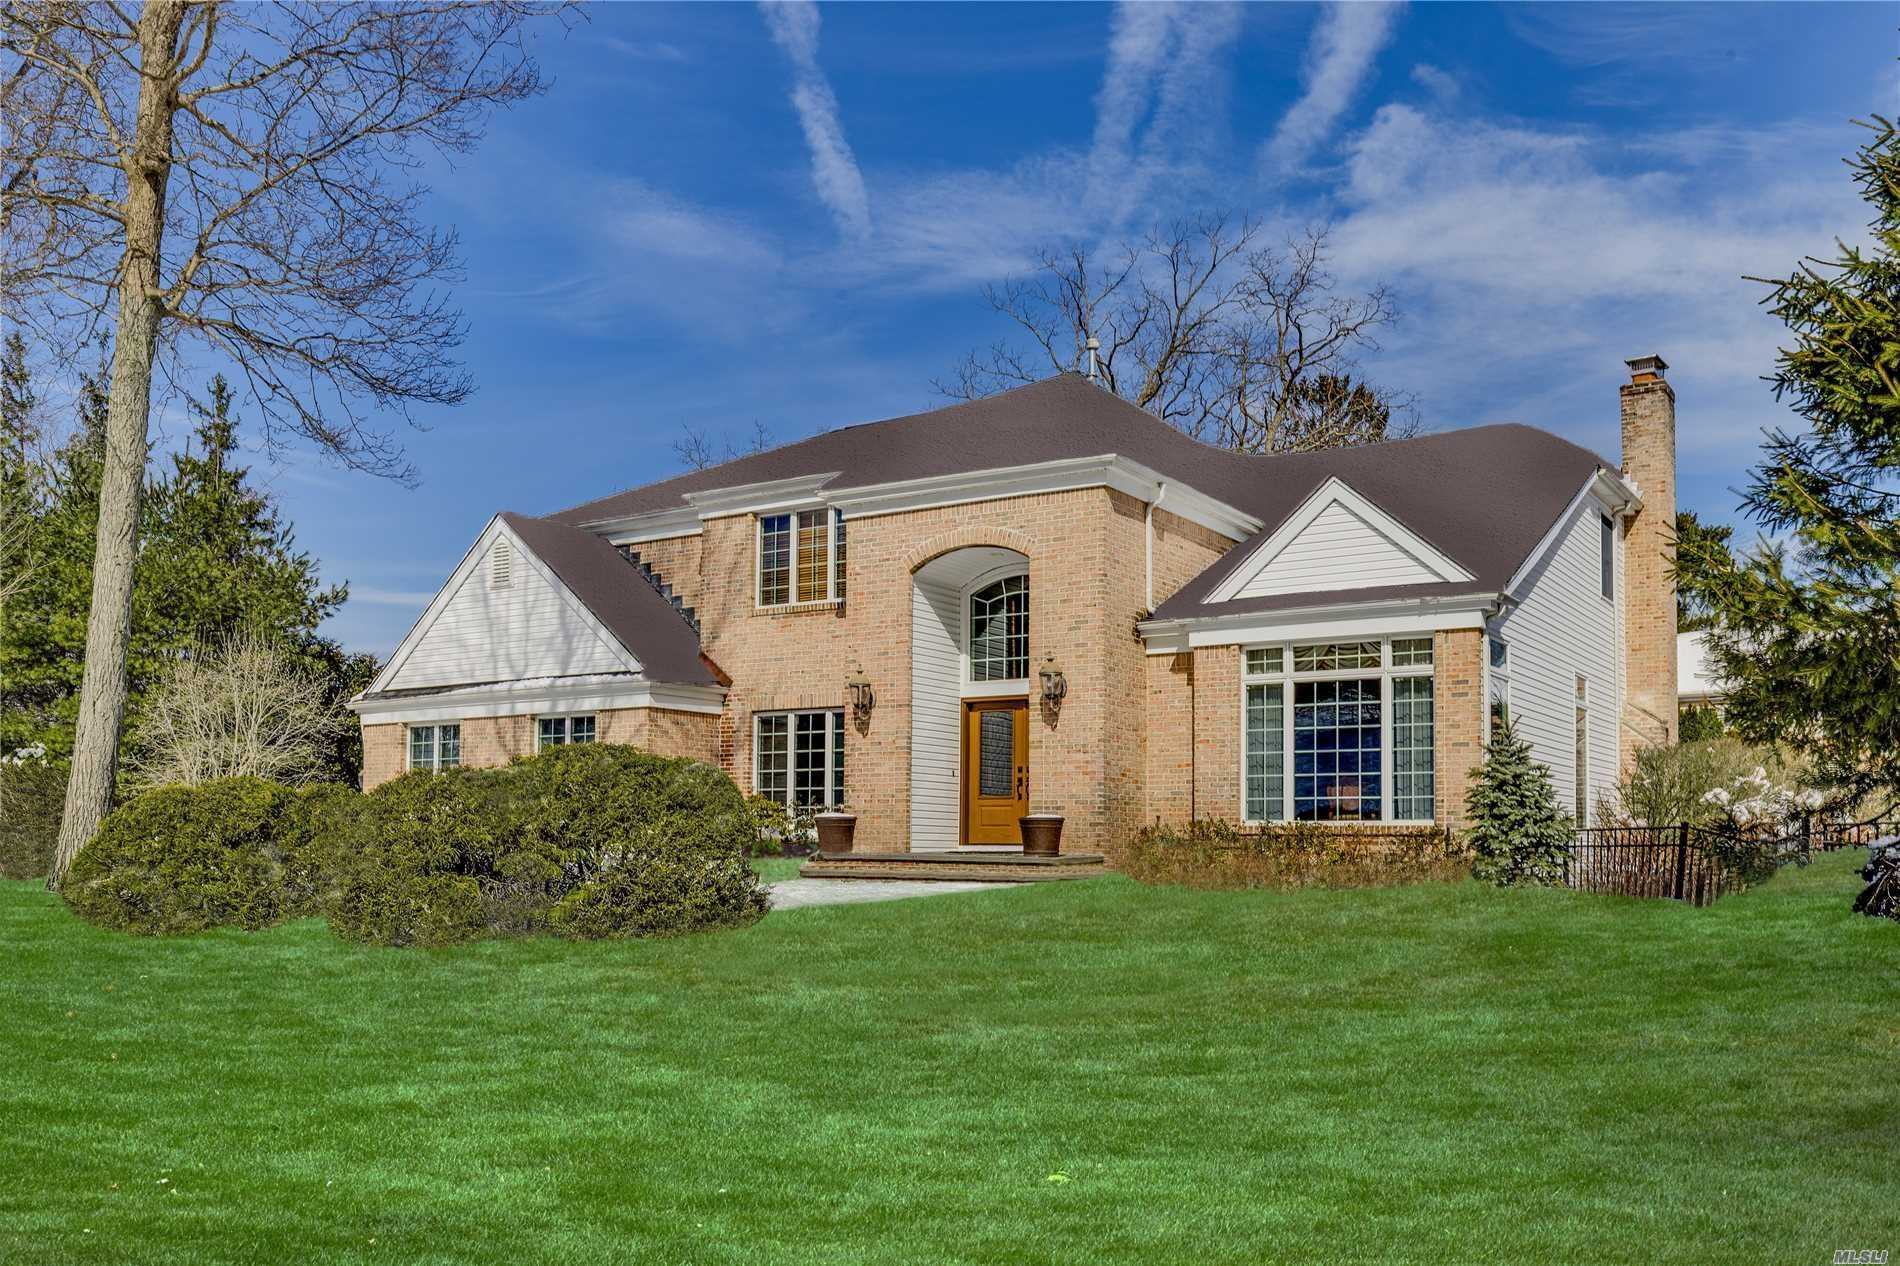 Beautifully Appointed Post Modern Colonial In Prestigious Gated Community.This Inviting Home Features Soaring Ceilings, Rich Wood Floors & Gracious Open Floor Plan You Are Looking For. High End Finishes Throughout & Featured In Elegant Upgraded Kitchen, Beautifully Renovated Bathrooms & Custom Built Ins.Fabulous Finished Lower Level Offers More Living Space.A True Must See!Award Winning Hhh Schools-Hhhw.Hoa Covers 24 Hr. Sec, Pool, Tennis, Gym, Playground